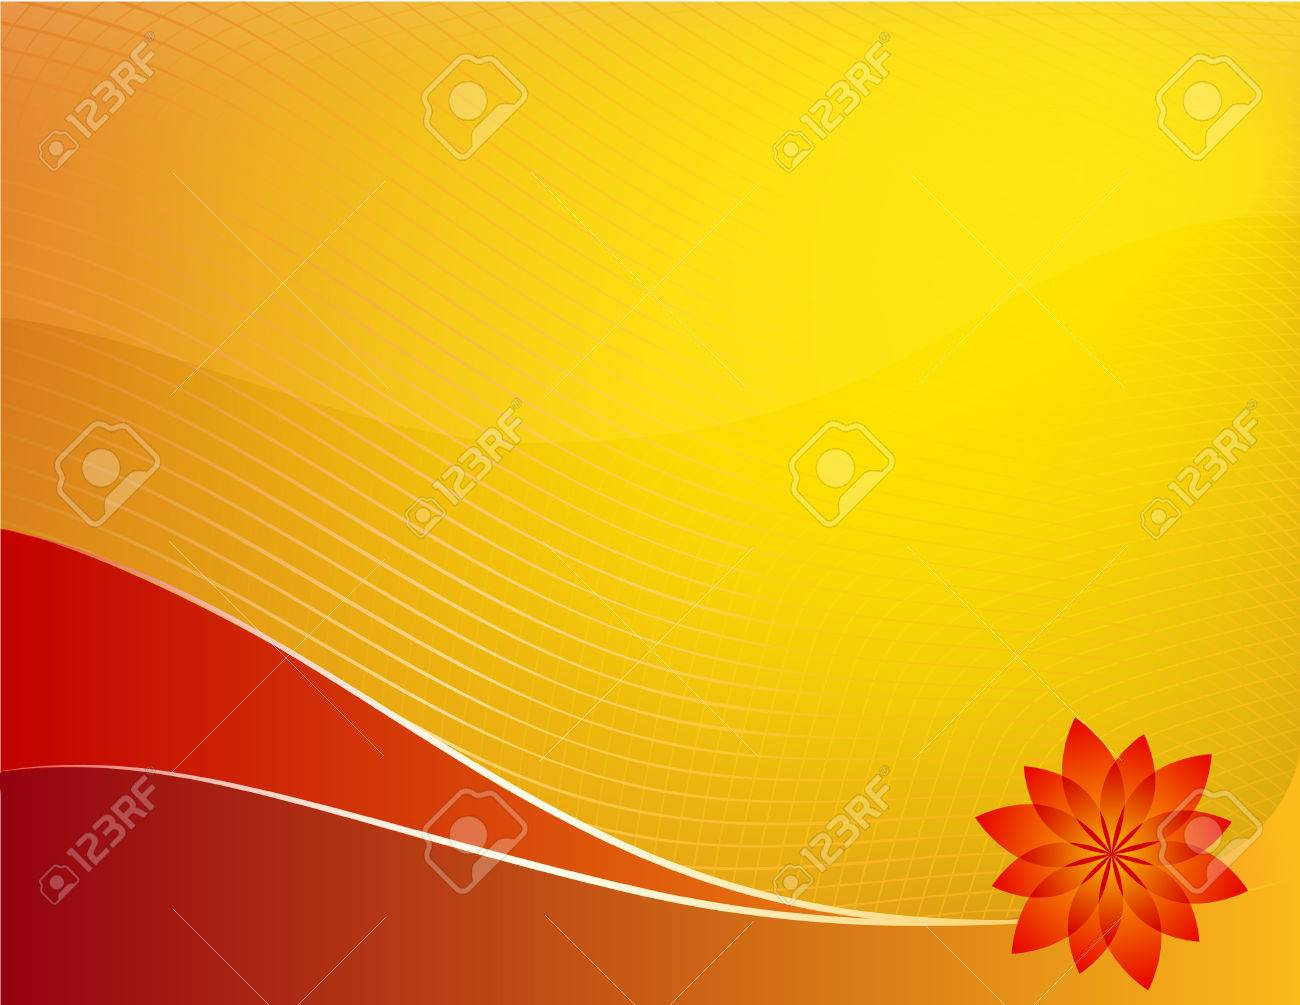 Orange summer background: composition of curved lines and flower - great for backgrounds, or layering over other images or text Stock Vector - 3696181